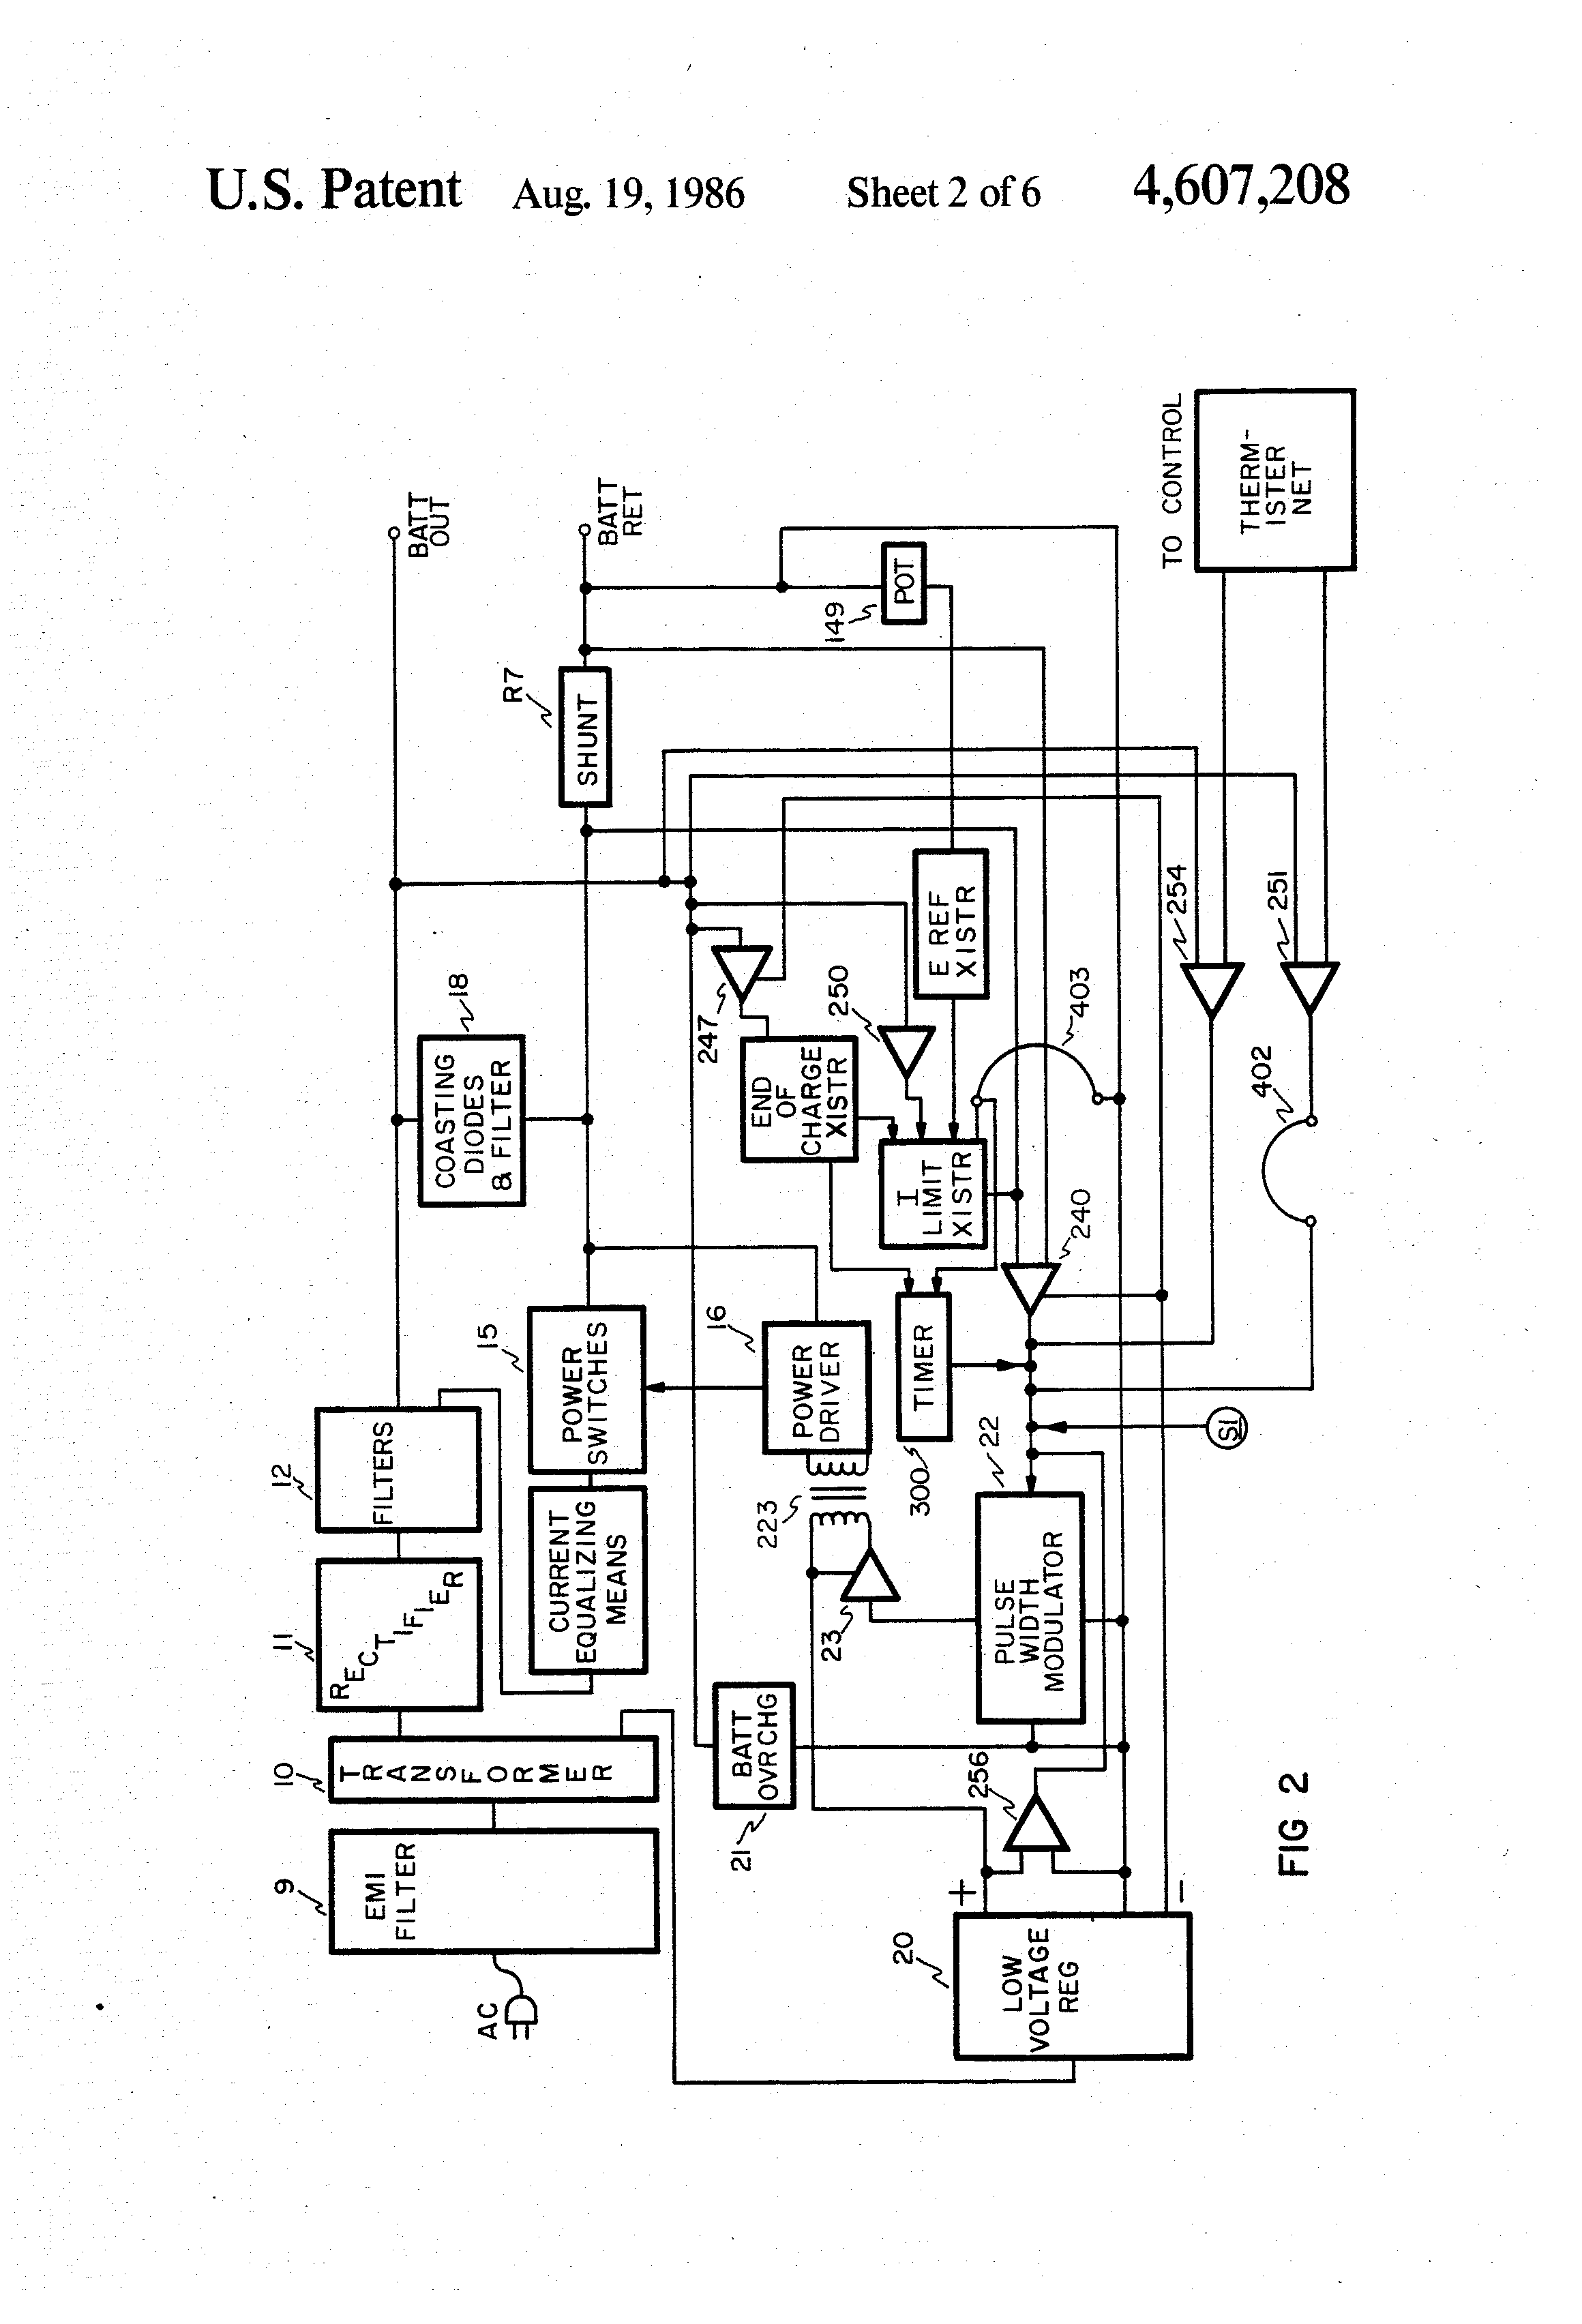 US4607208 2 wiring diagram for schumacher battery charger circuit and dayton 12v battery charger wiring diagram at bakdesigns.co